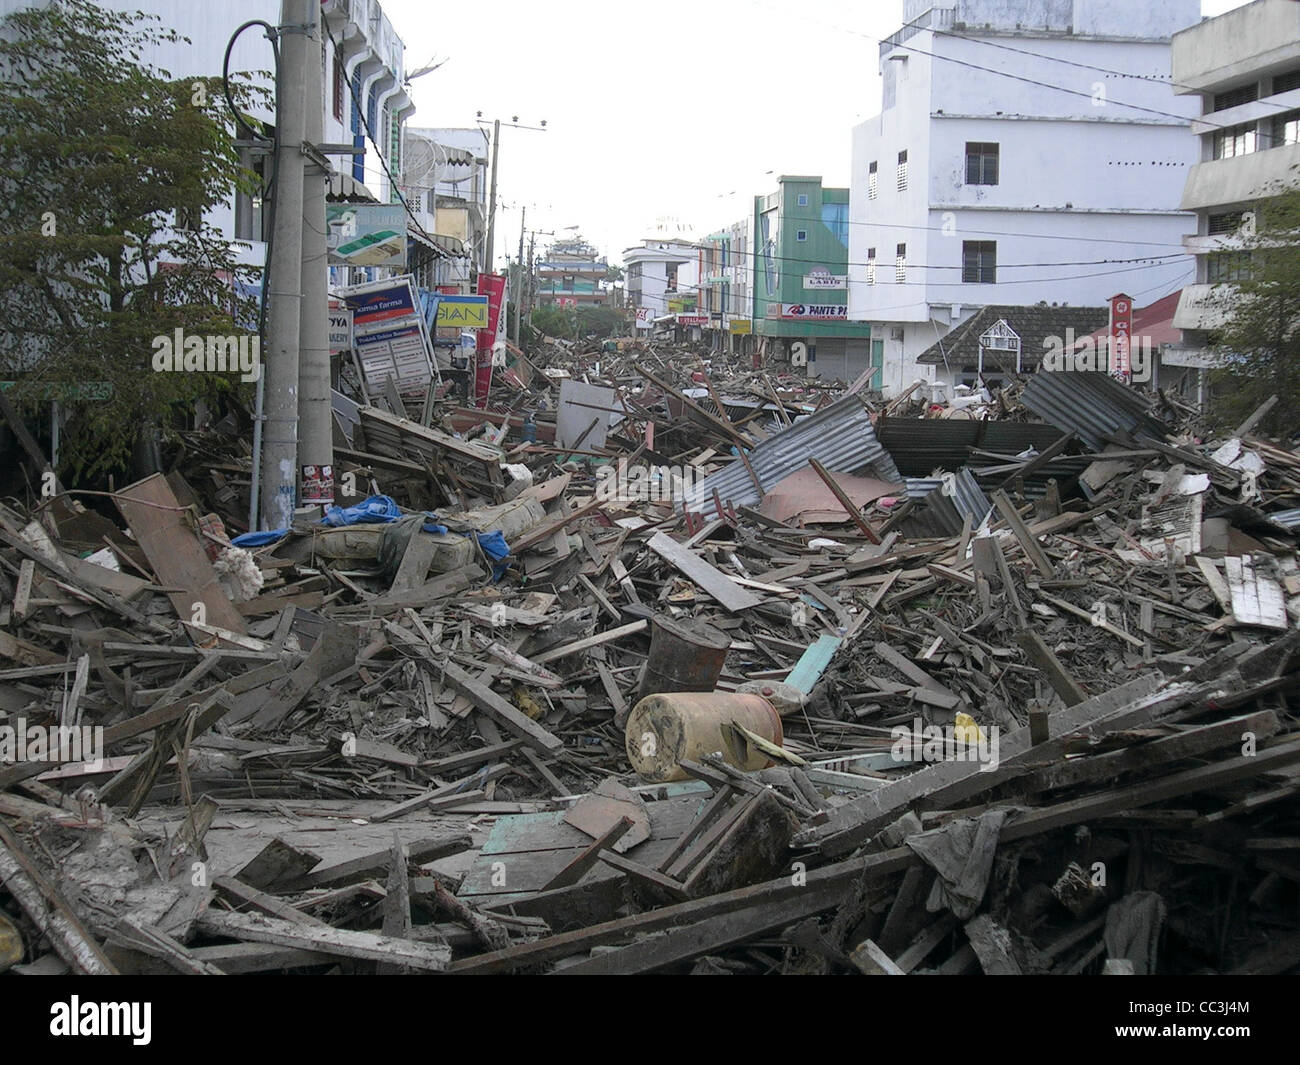 Indonesia Banda Aceh The Effects Of The Tsunami In December 2004 Stock Photo Alamy